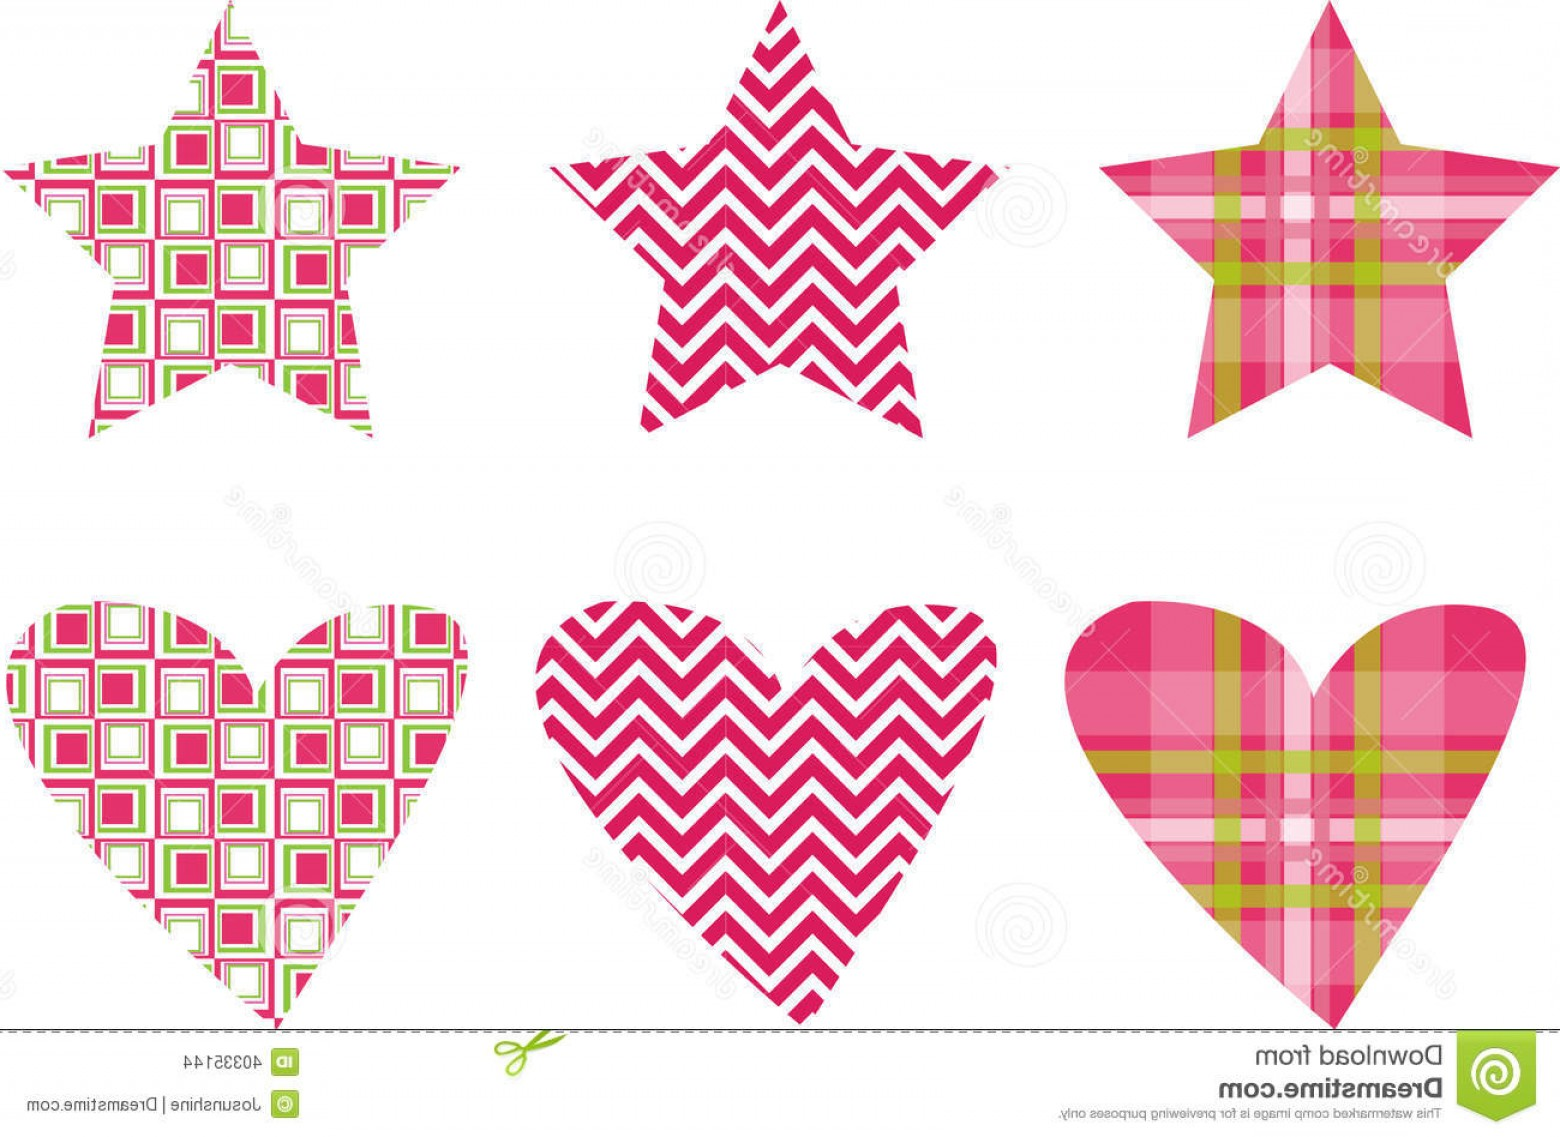 Vectors Heart And Star: Stock Images Cute Star Heart Pattern Vectors Vector Shapes Image